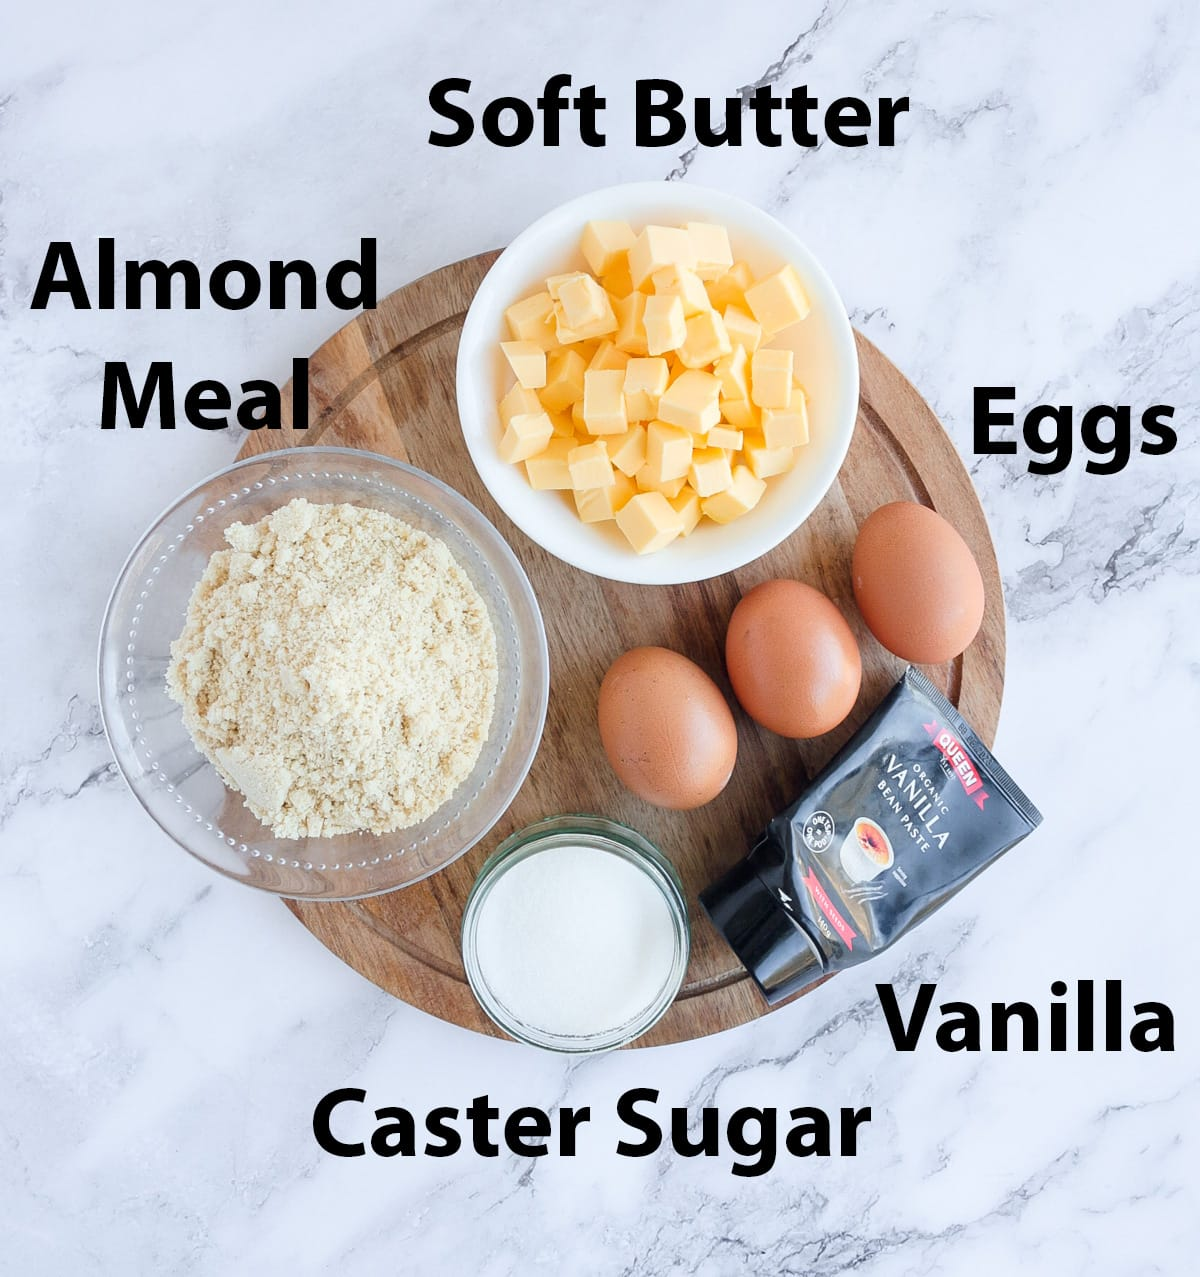 Ingredients place on a round wooden board over a marble surface.